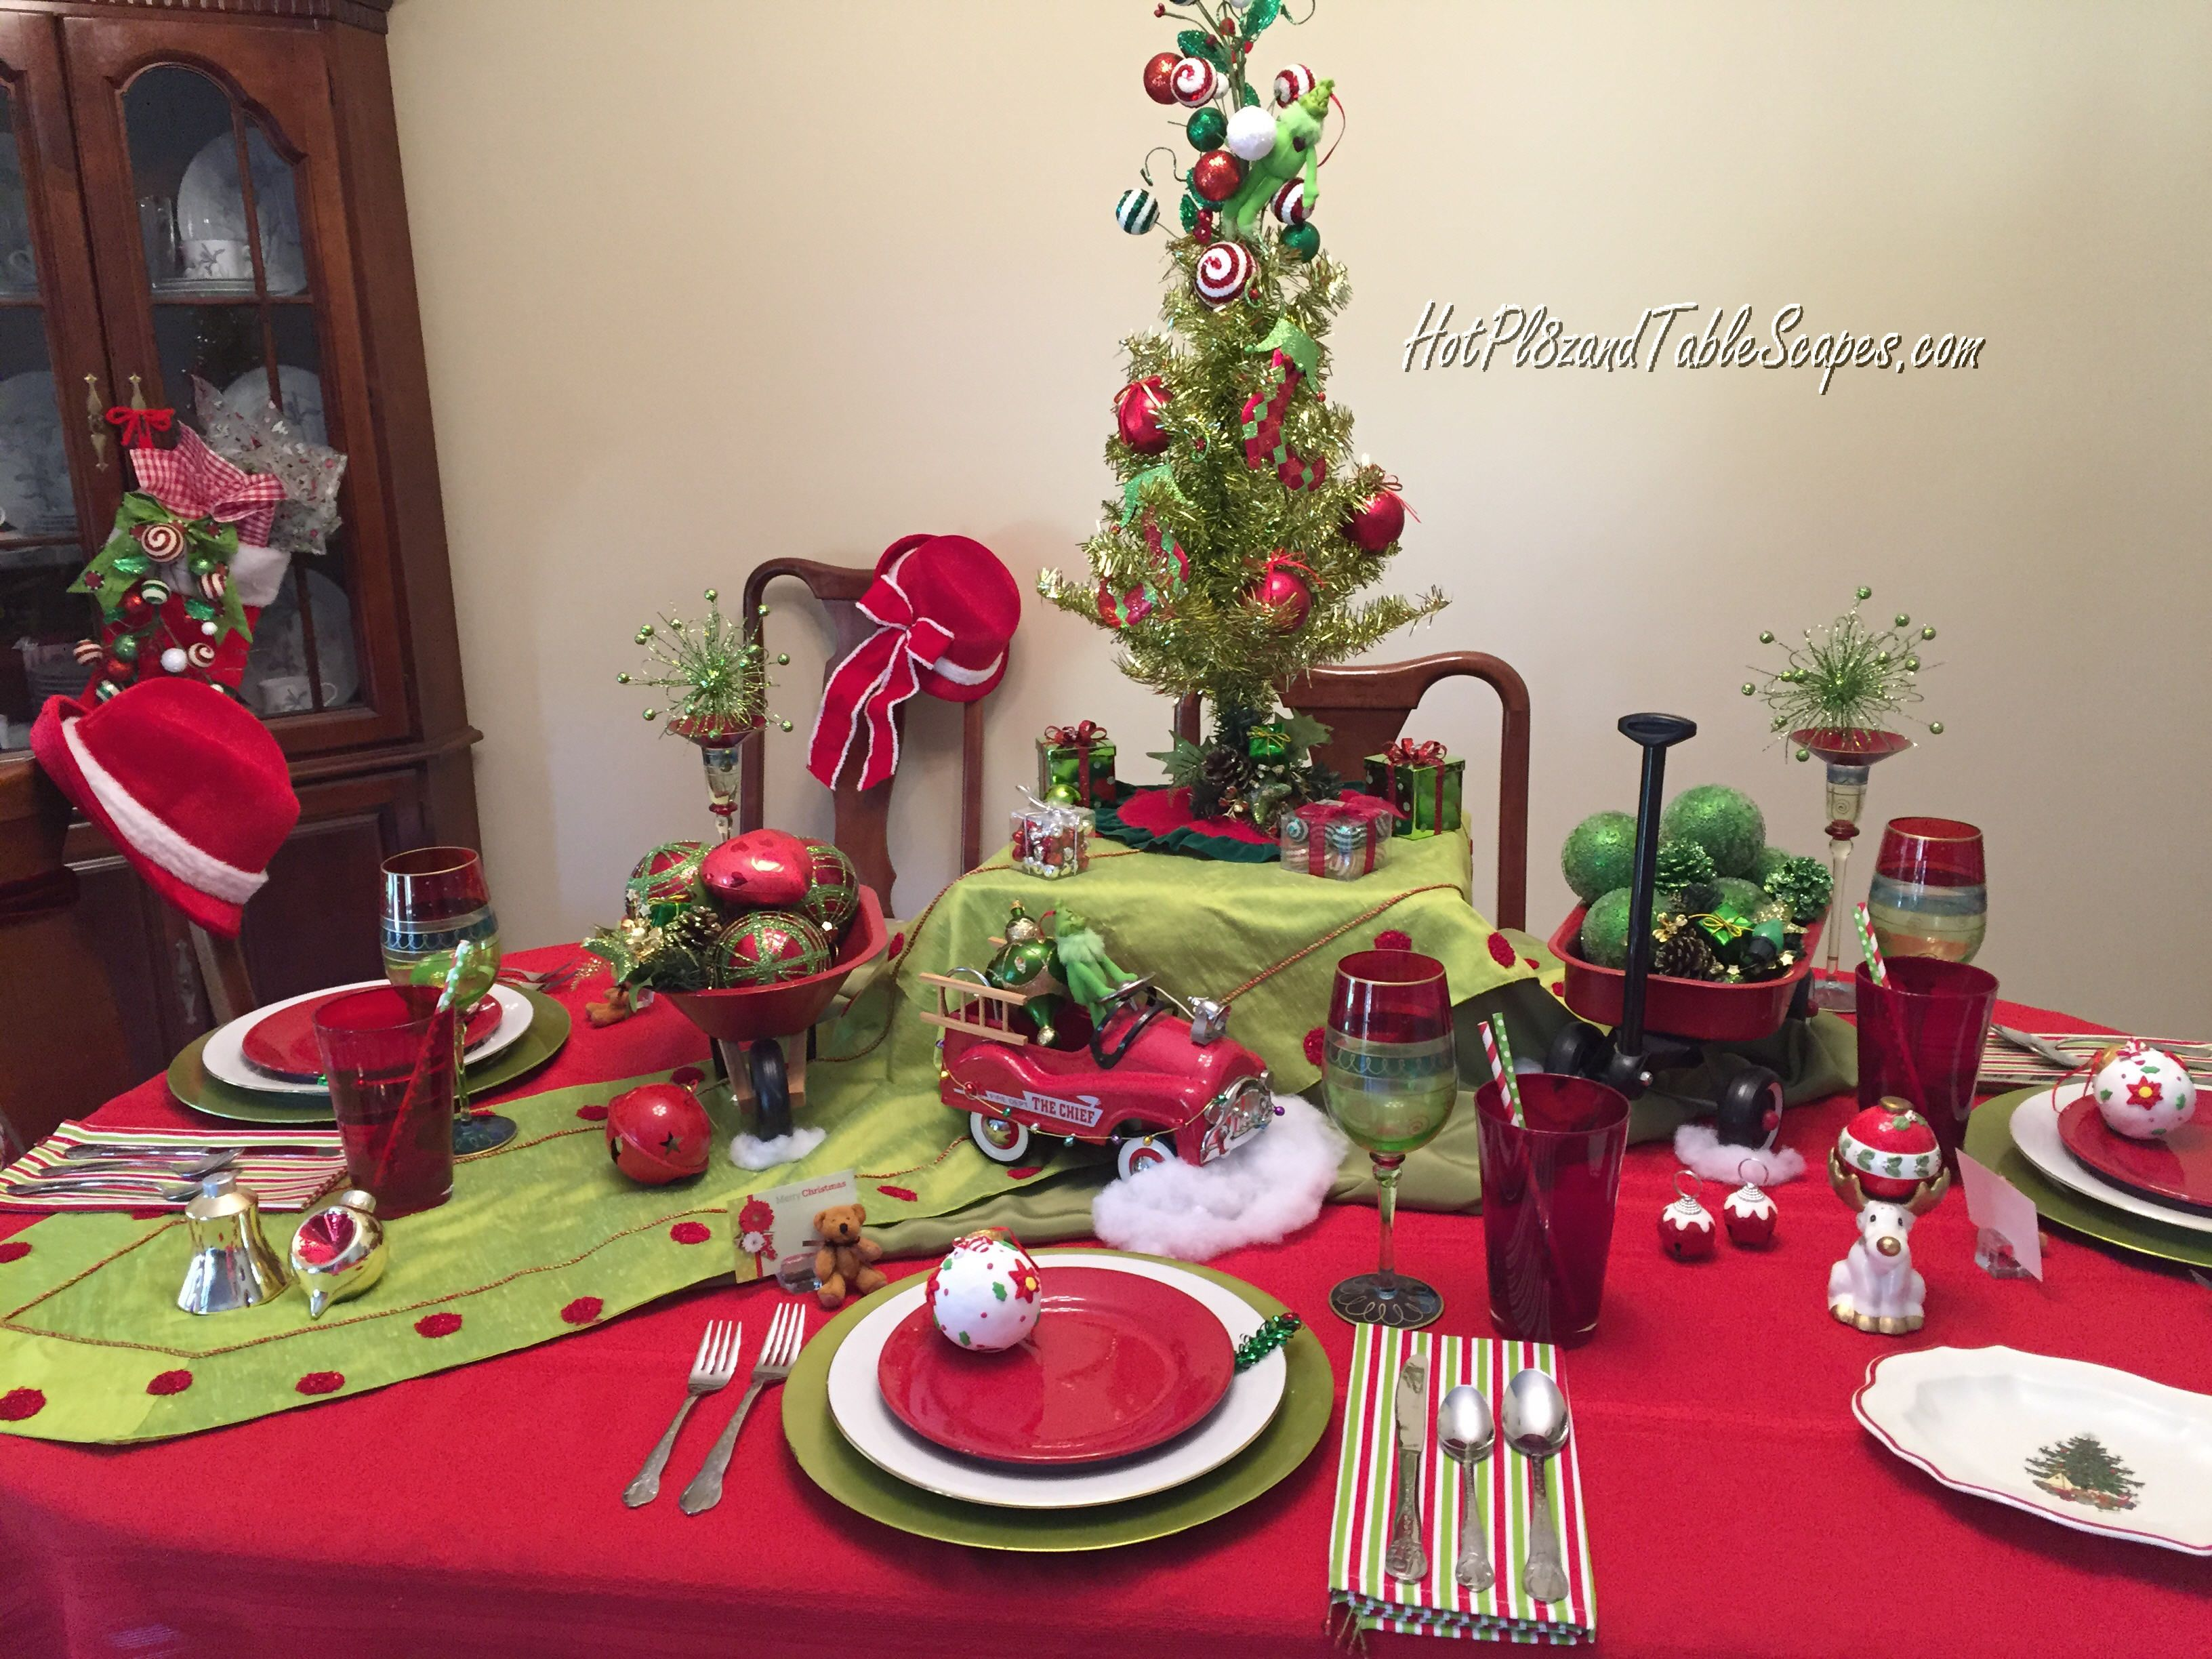 Pin by Sandy Park on TAblescape Christmas Pinterest